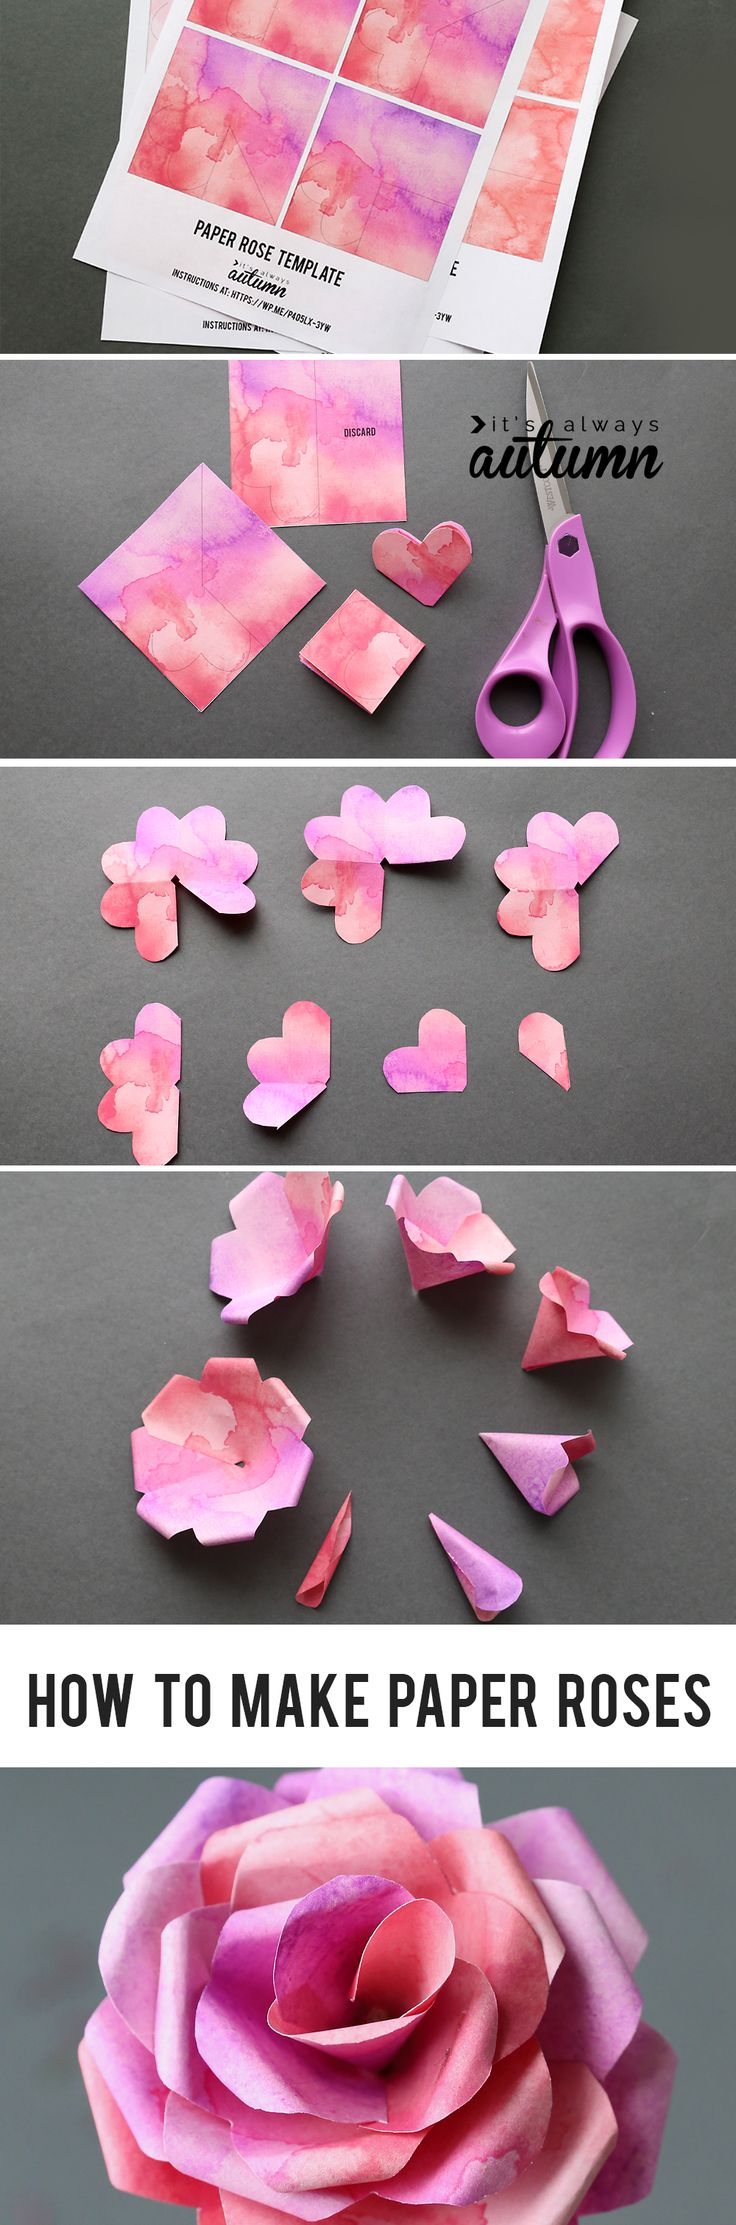 paper rose easy instructions